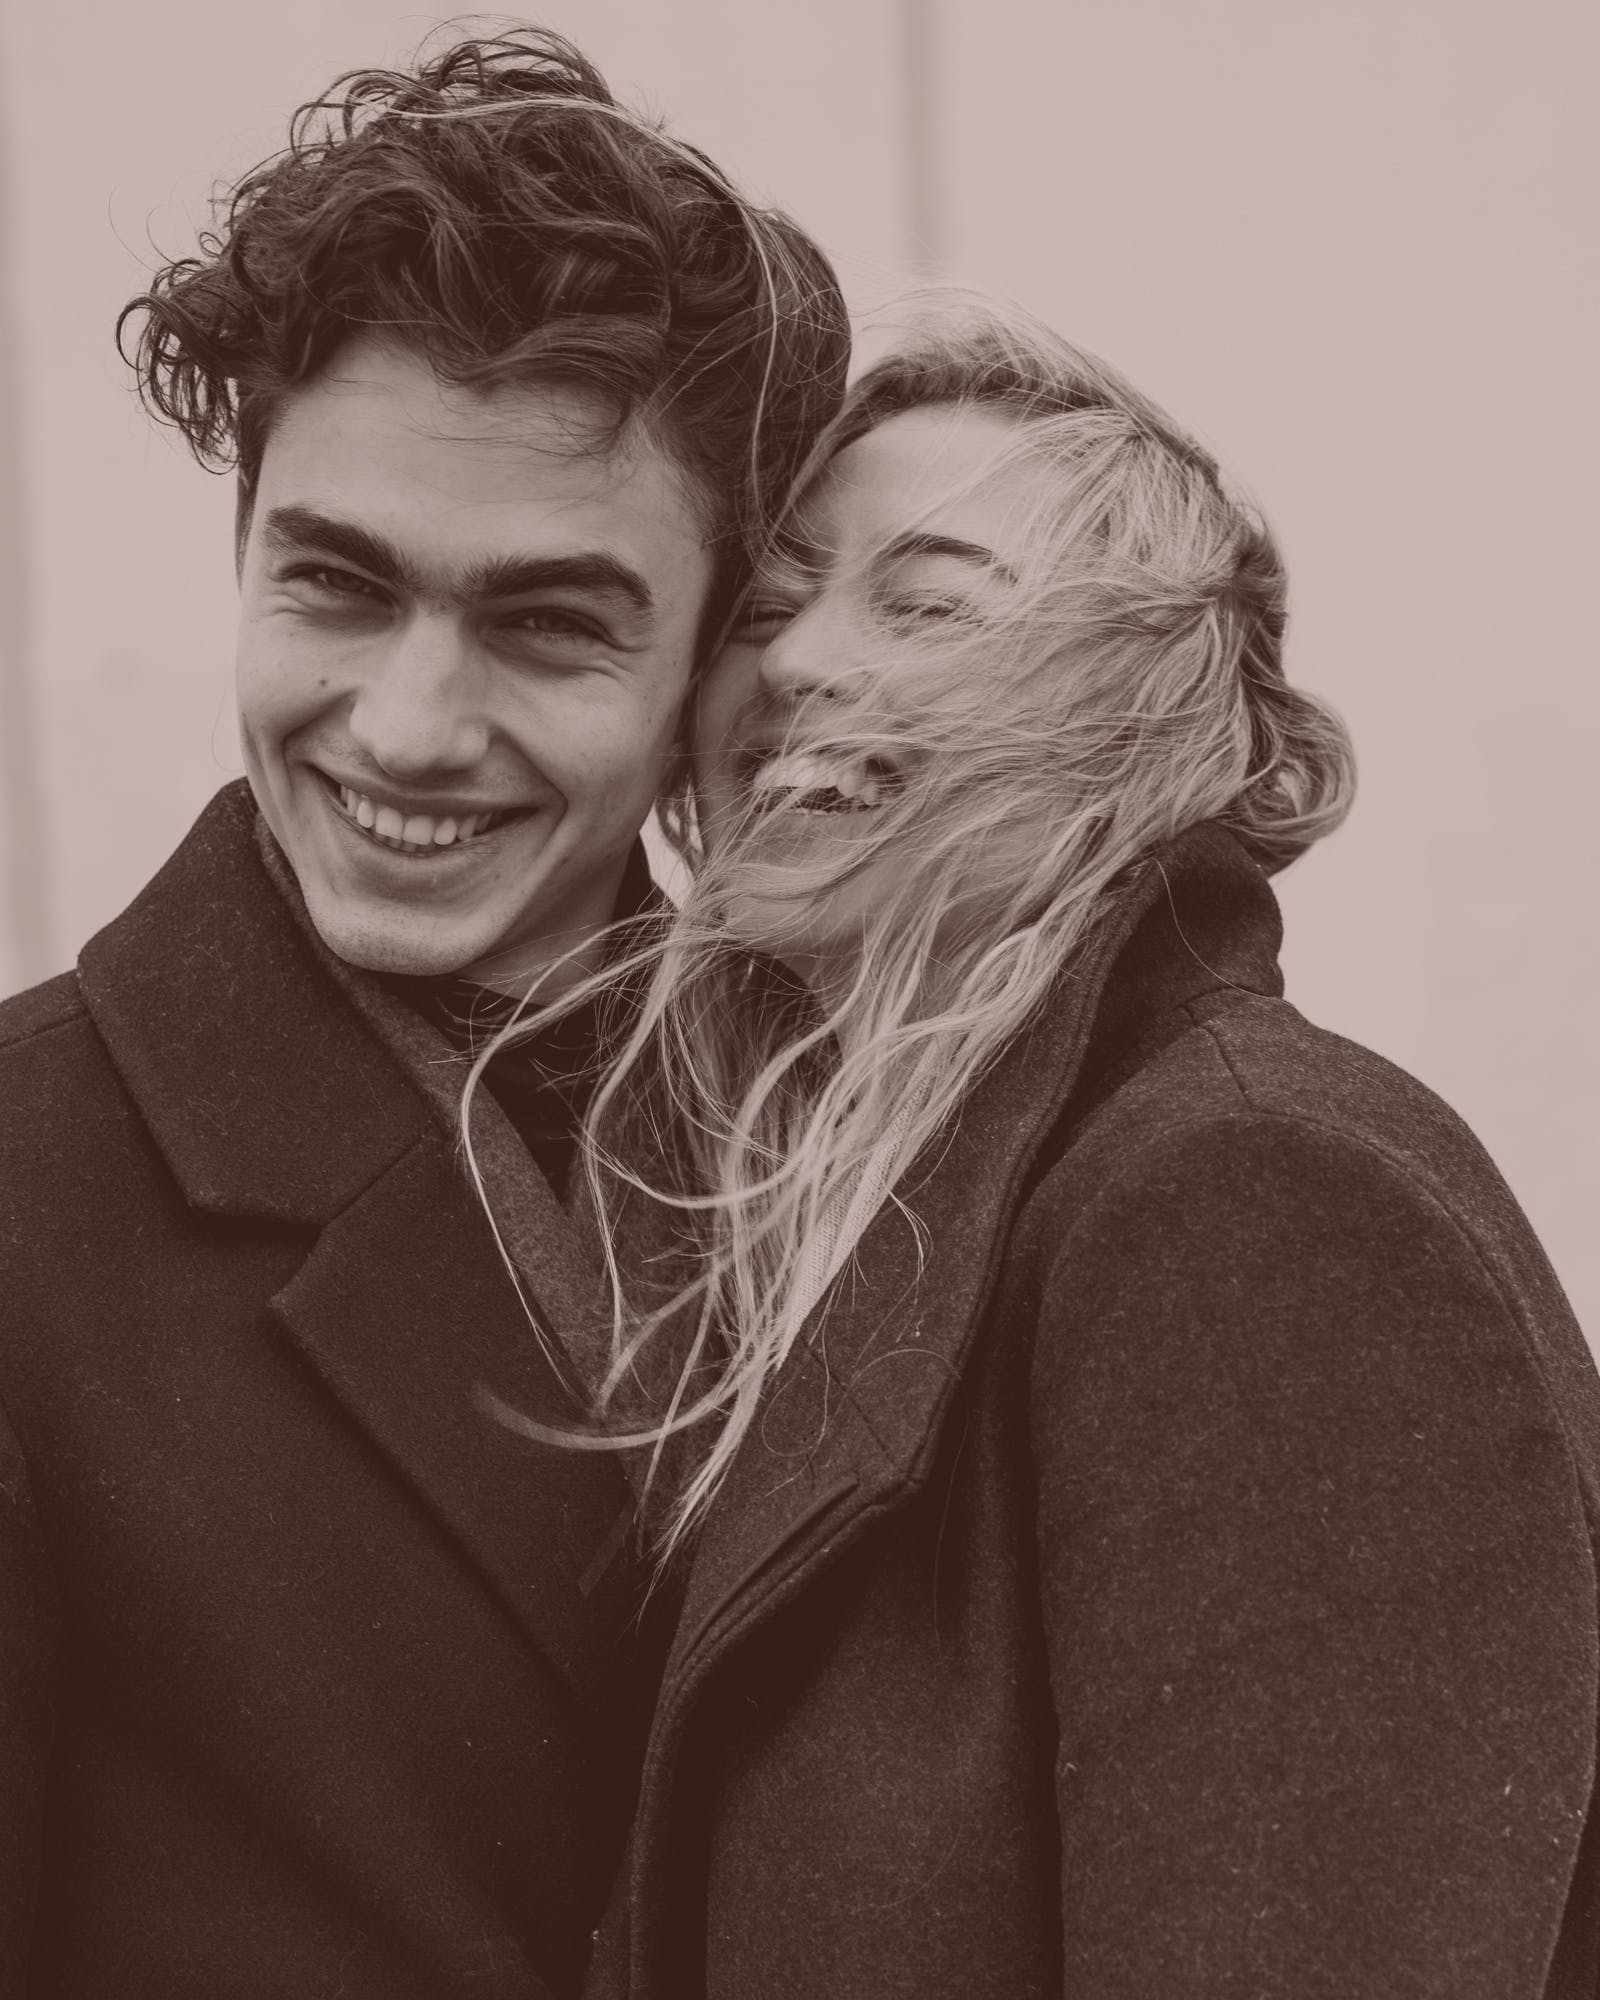 Instagram model Iskra laughing with a man.